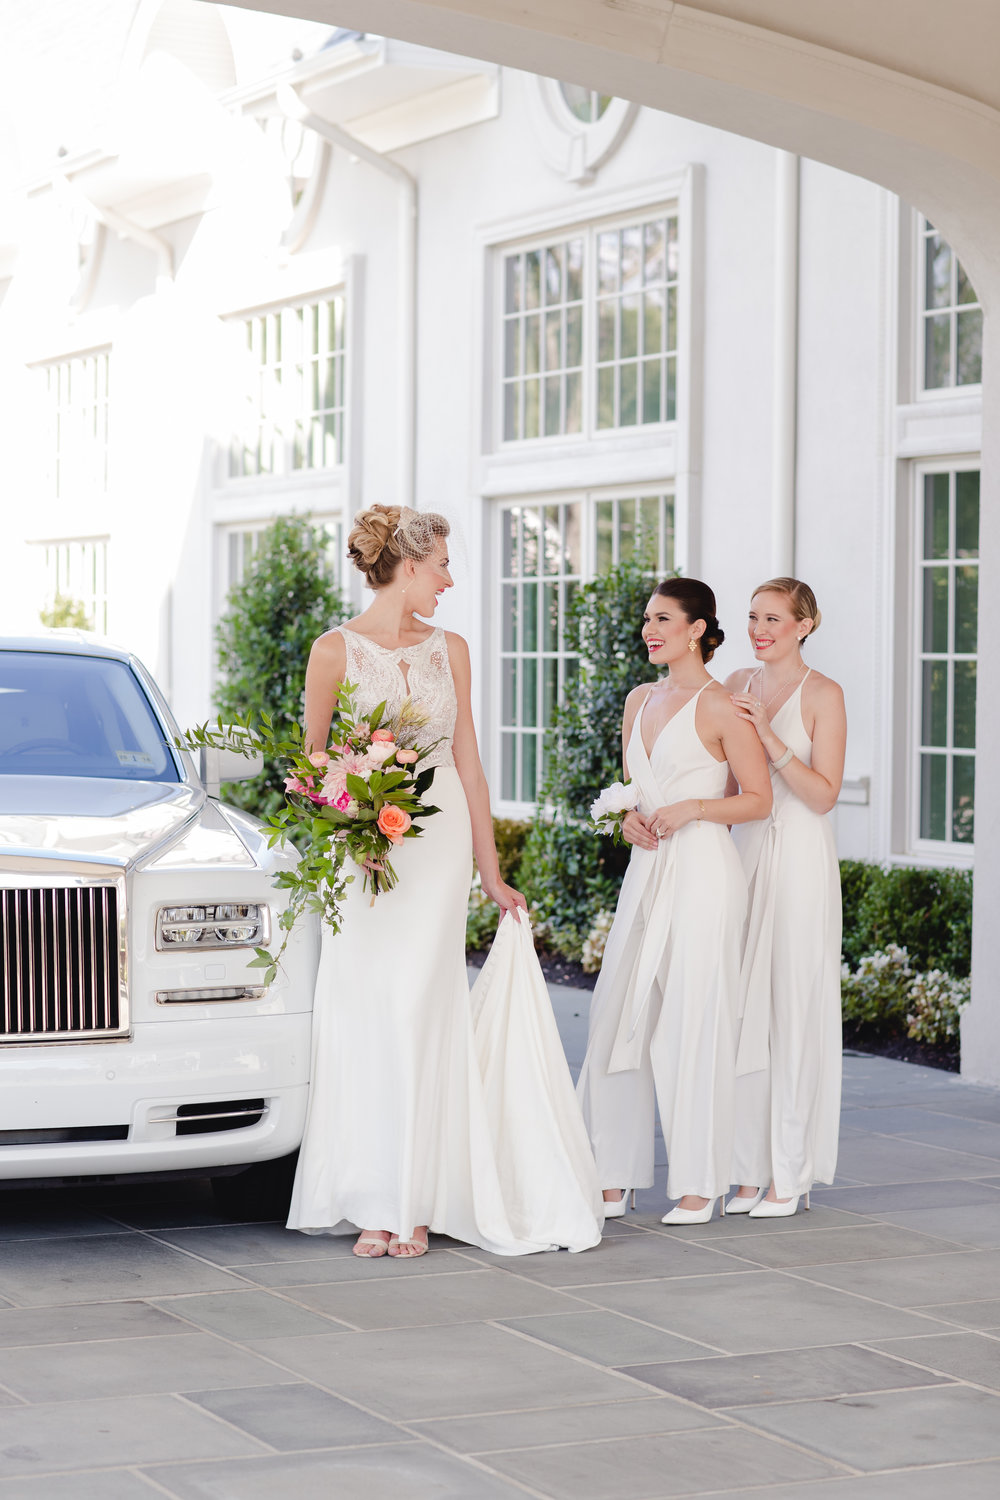 NJWeddingPhotographerVanessaJoy0833.jpg